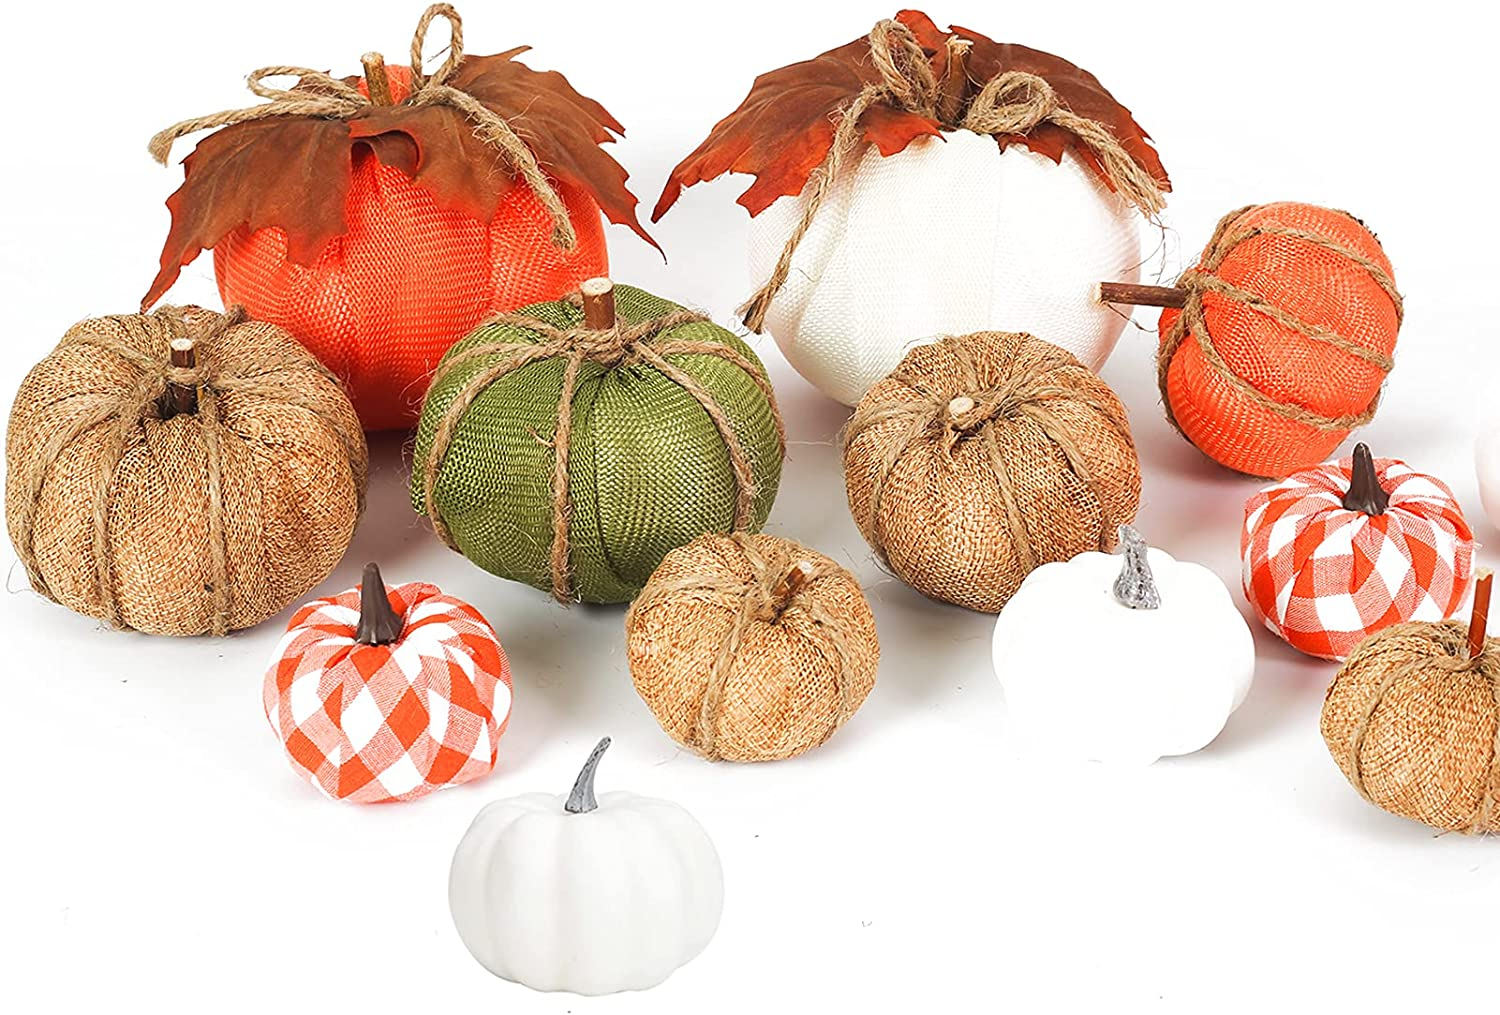 UNIVIVO 12pcs Farmhouse Fall Pumpkins Decor, Large Mini Mixed Fake Fabric Pumpkin with Leaves for Halloween Fall Thanksgiving Home Fireplace Tiered Tray Mantle Decoration